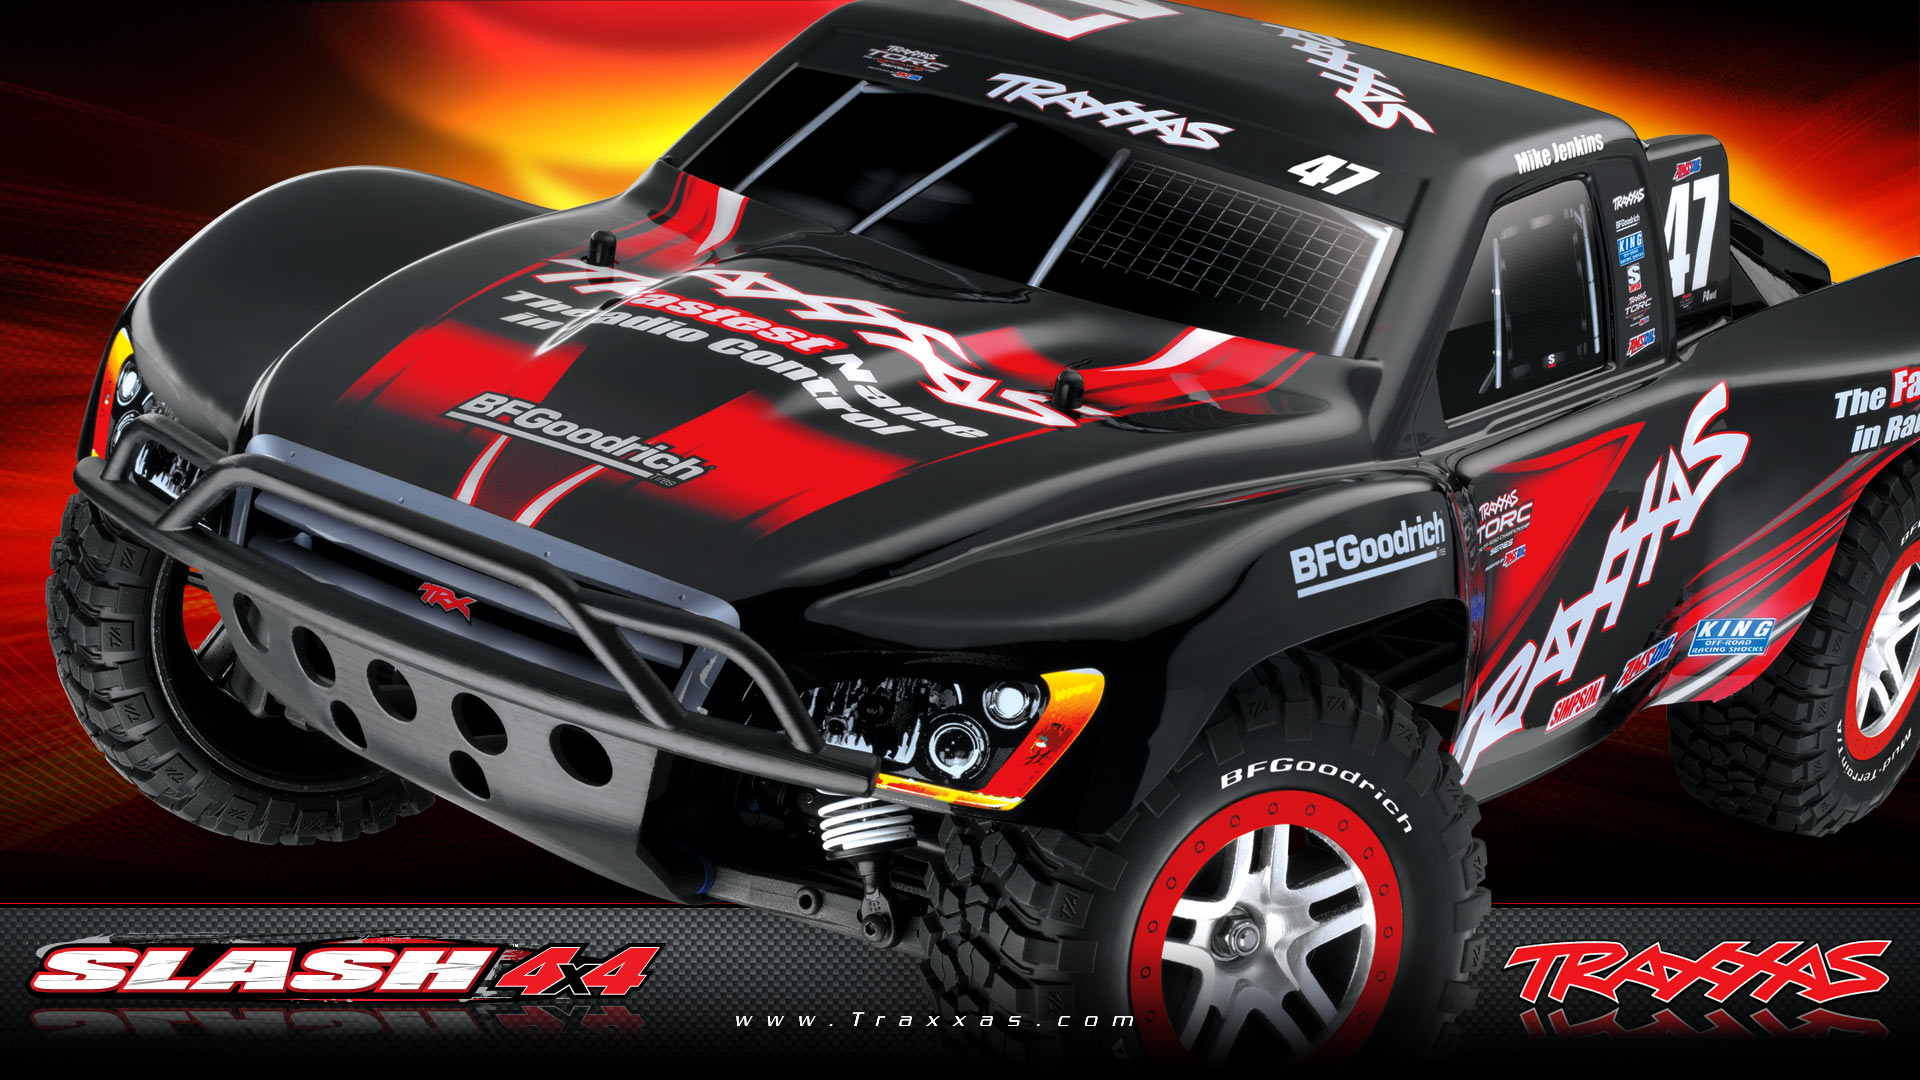 slayer rc truck with Traxxas Wallpaper on Rc Auto Traxxas Nitro Slayer additionally 141844272307 as well Traxxas 2215 Receiver Wiring Diagram further Traxxas Wallpaper also Traxxas Xmaxx Rc Truck.